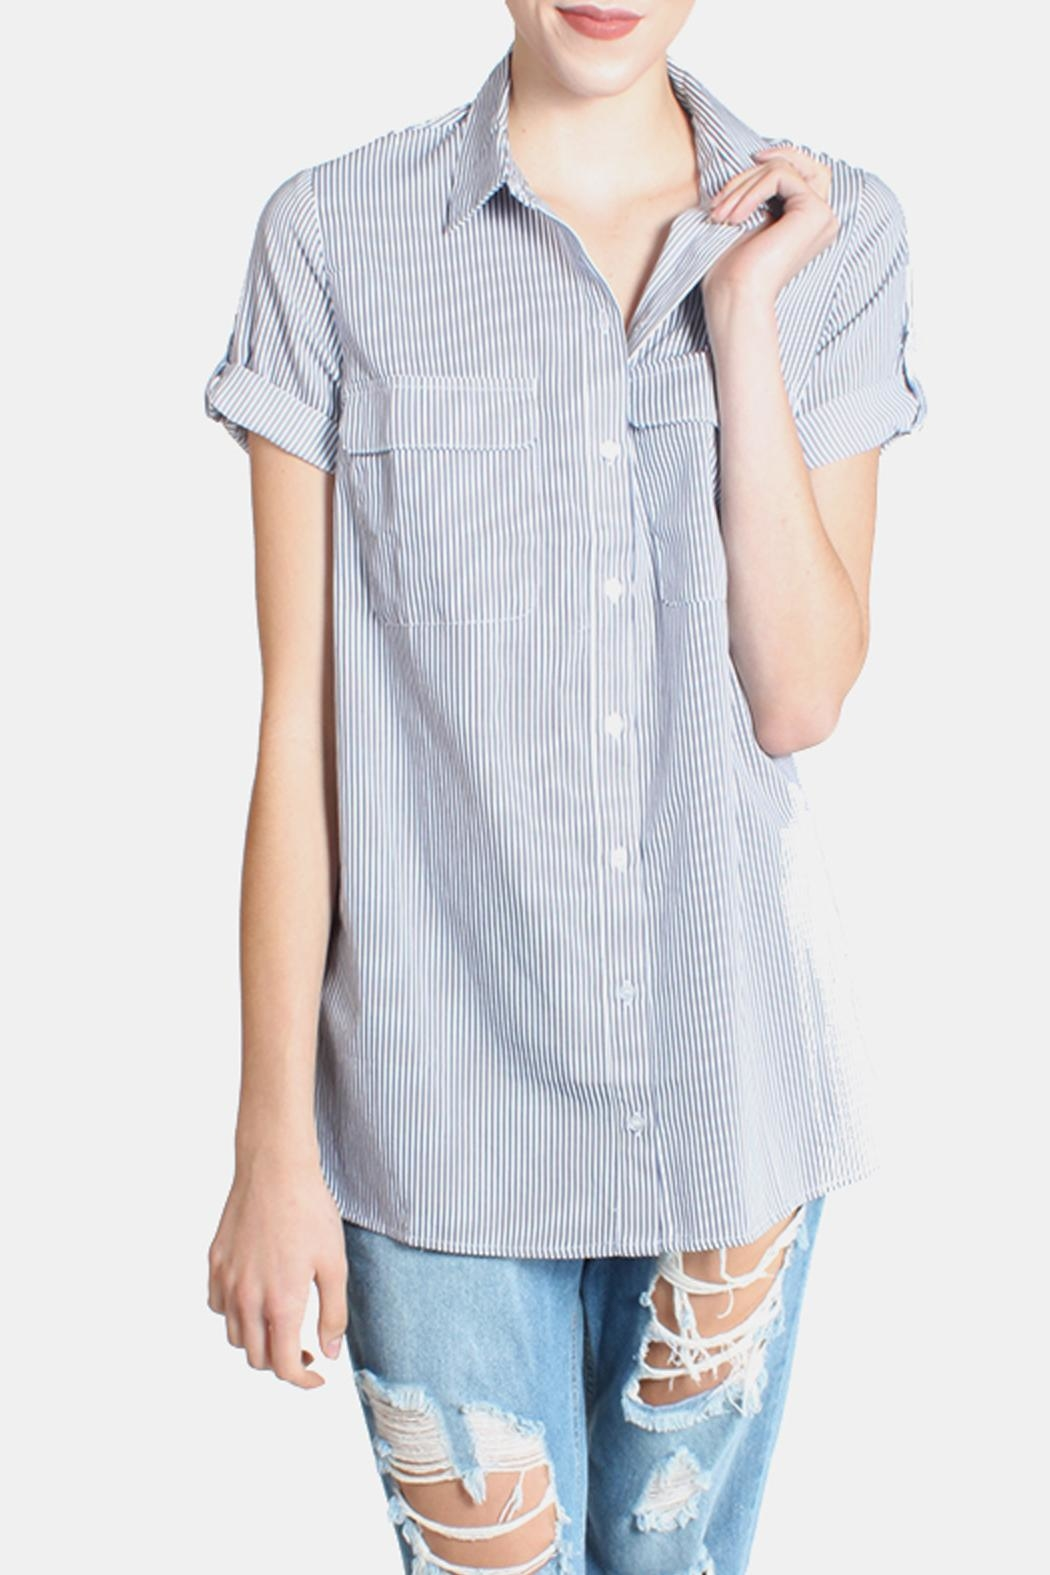 Lumiere Striped Button Down Shirt - Main Image